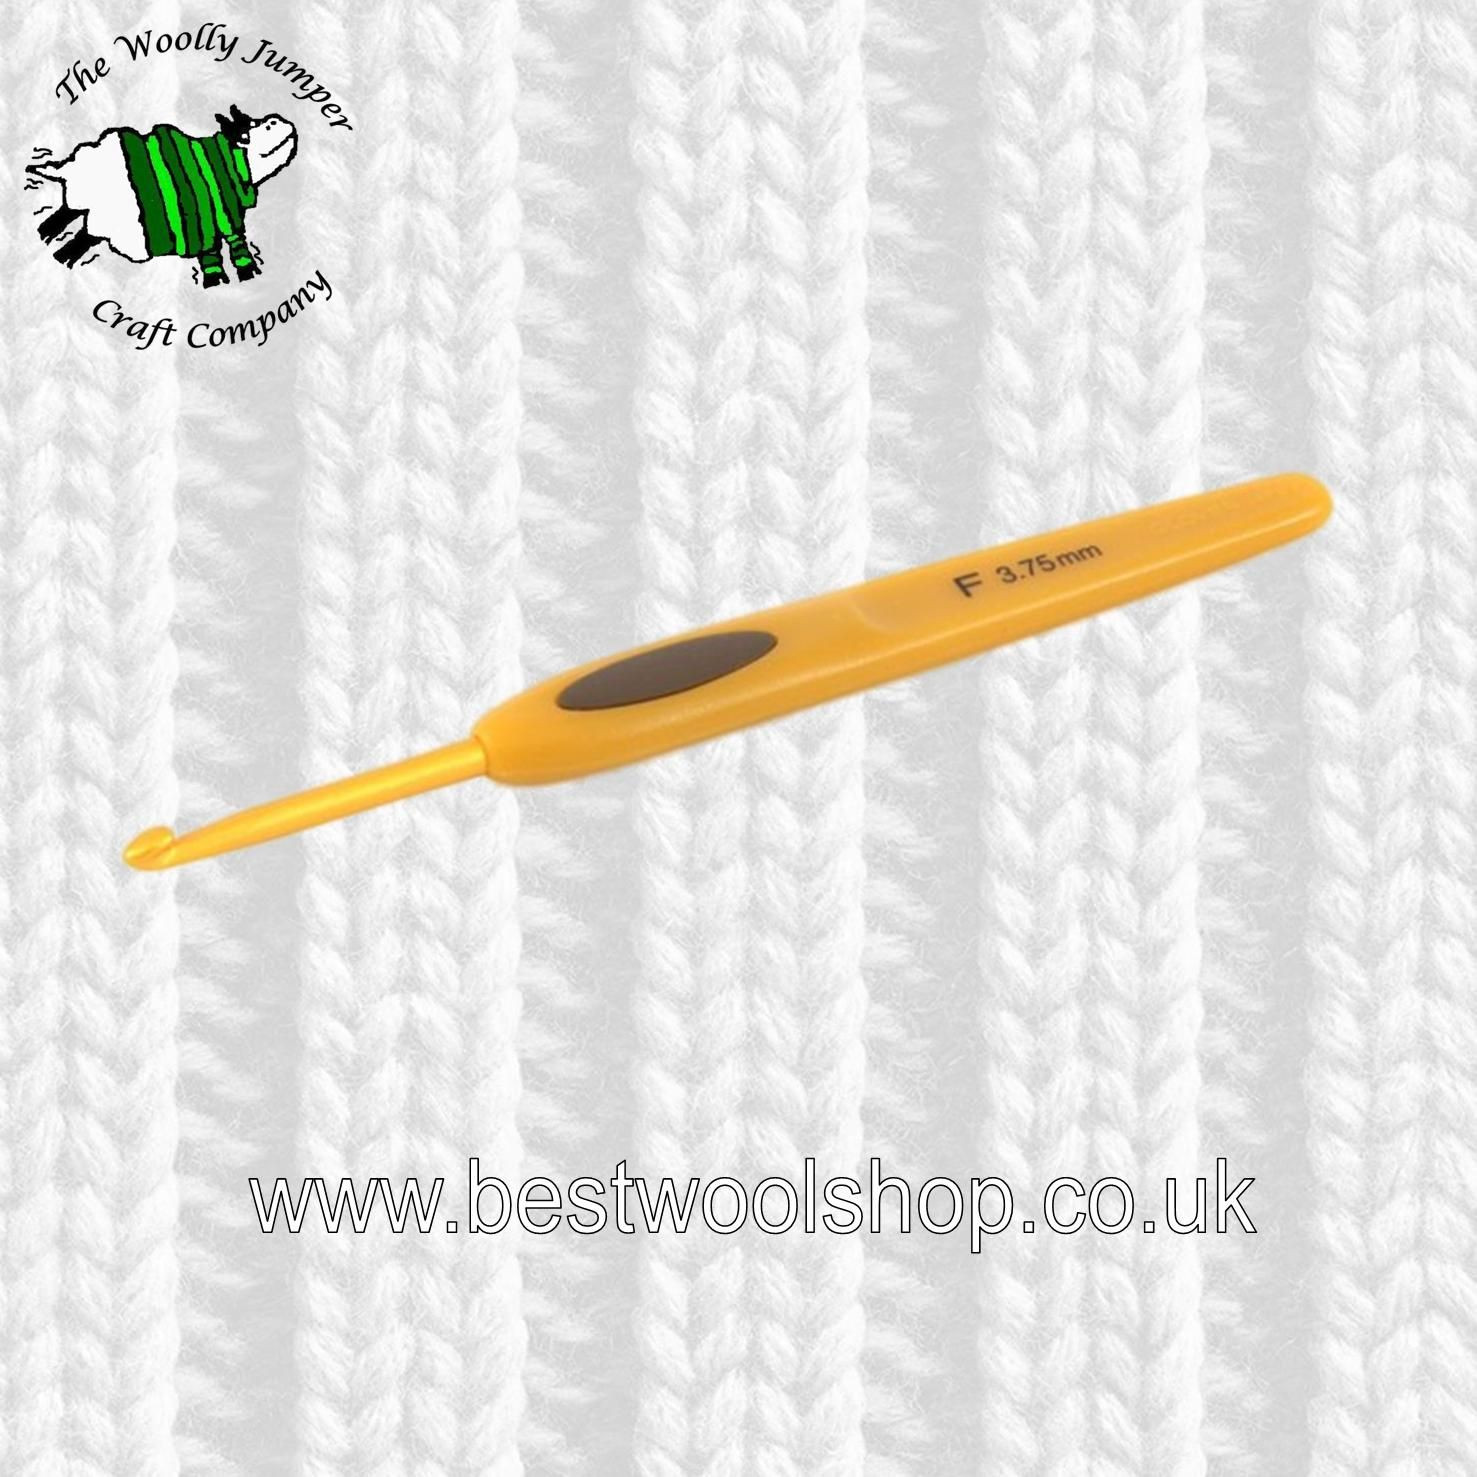 Elegant 3 75 Mm Clover soft touch Crochet Hook F Clover soft touch Crochet Hooks Of Lovely Clover soft touch Crochet Hook Aluminium 13cm – Deramores Clover soft touch Crochet Hooks